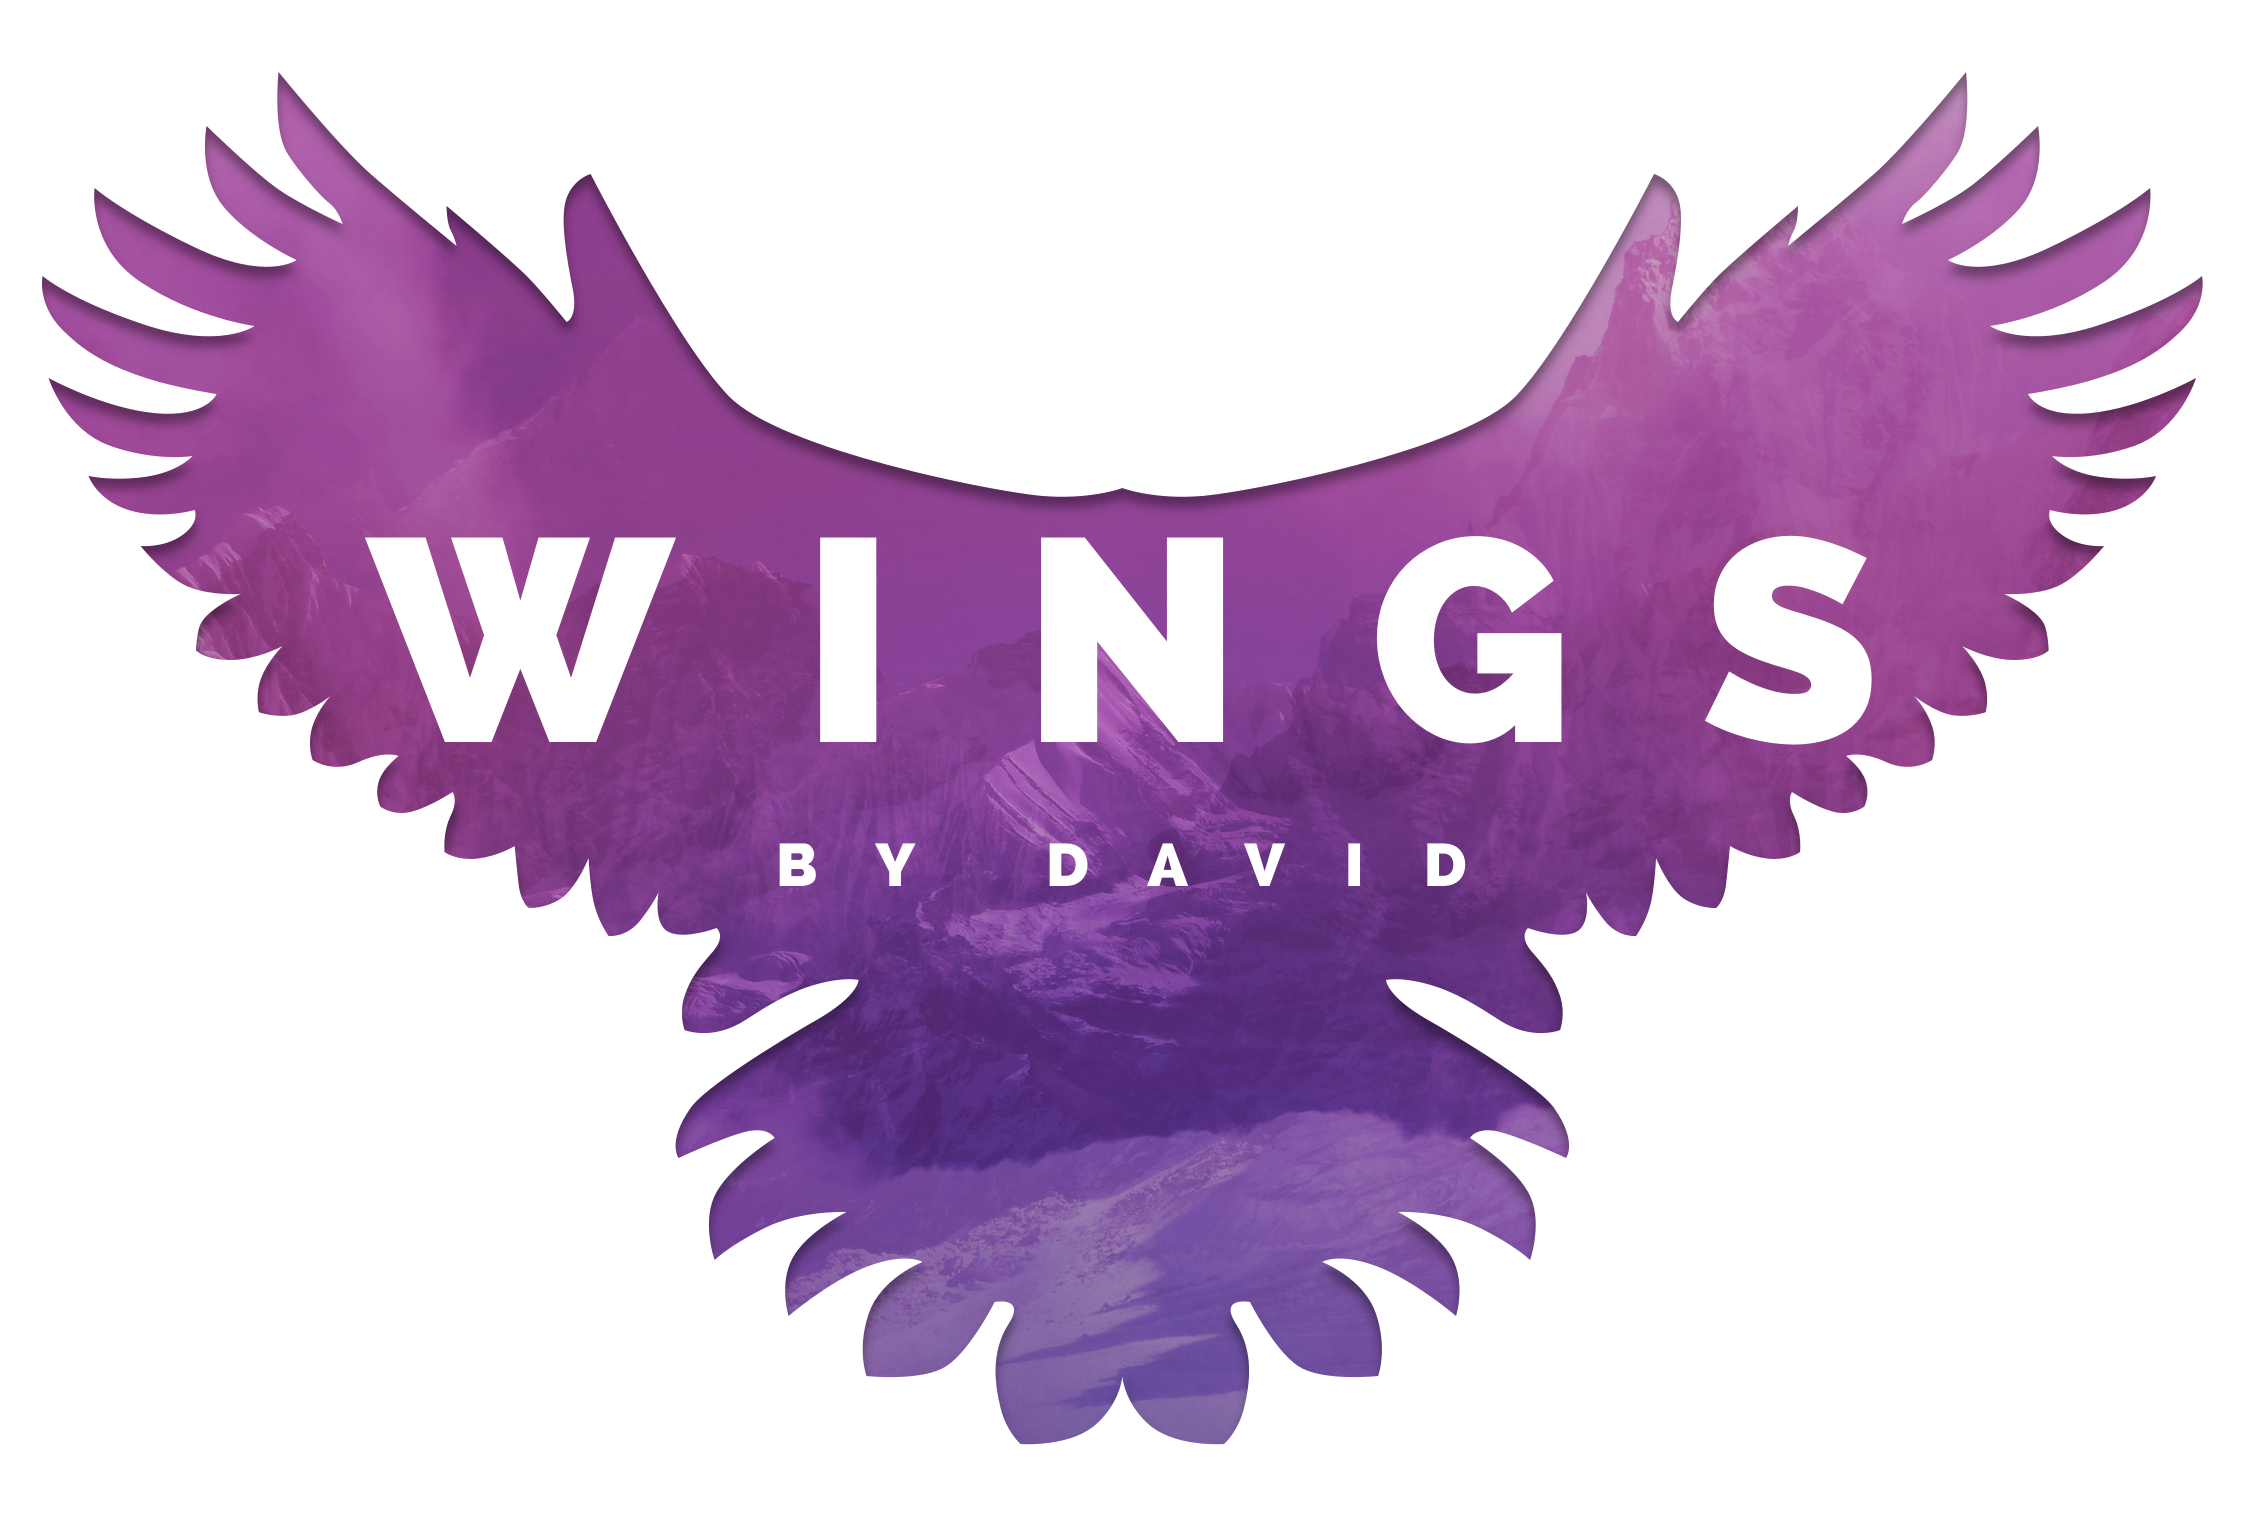 WINGS by David